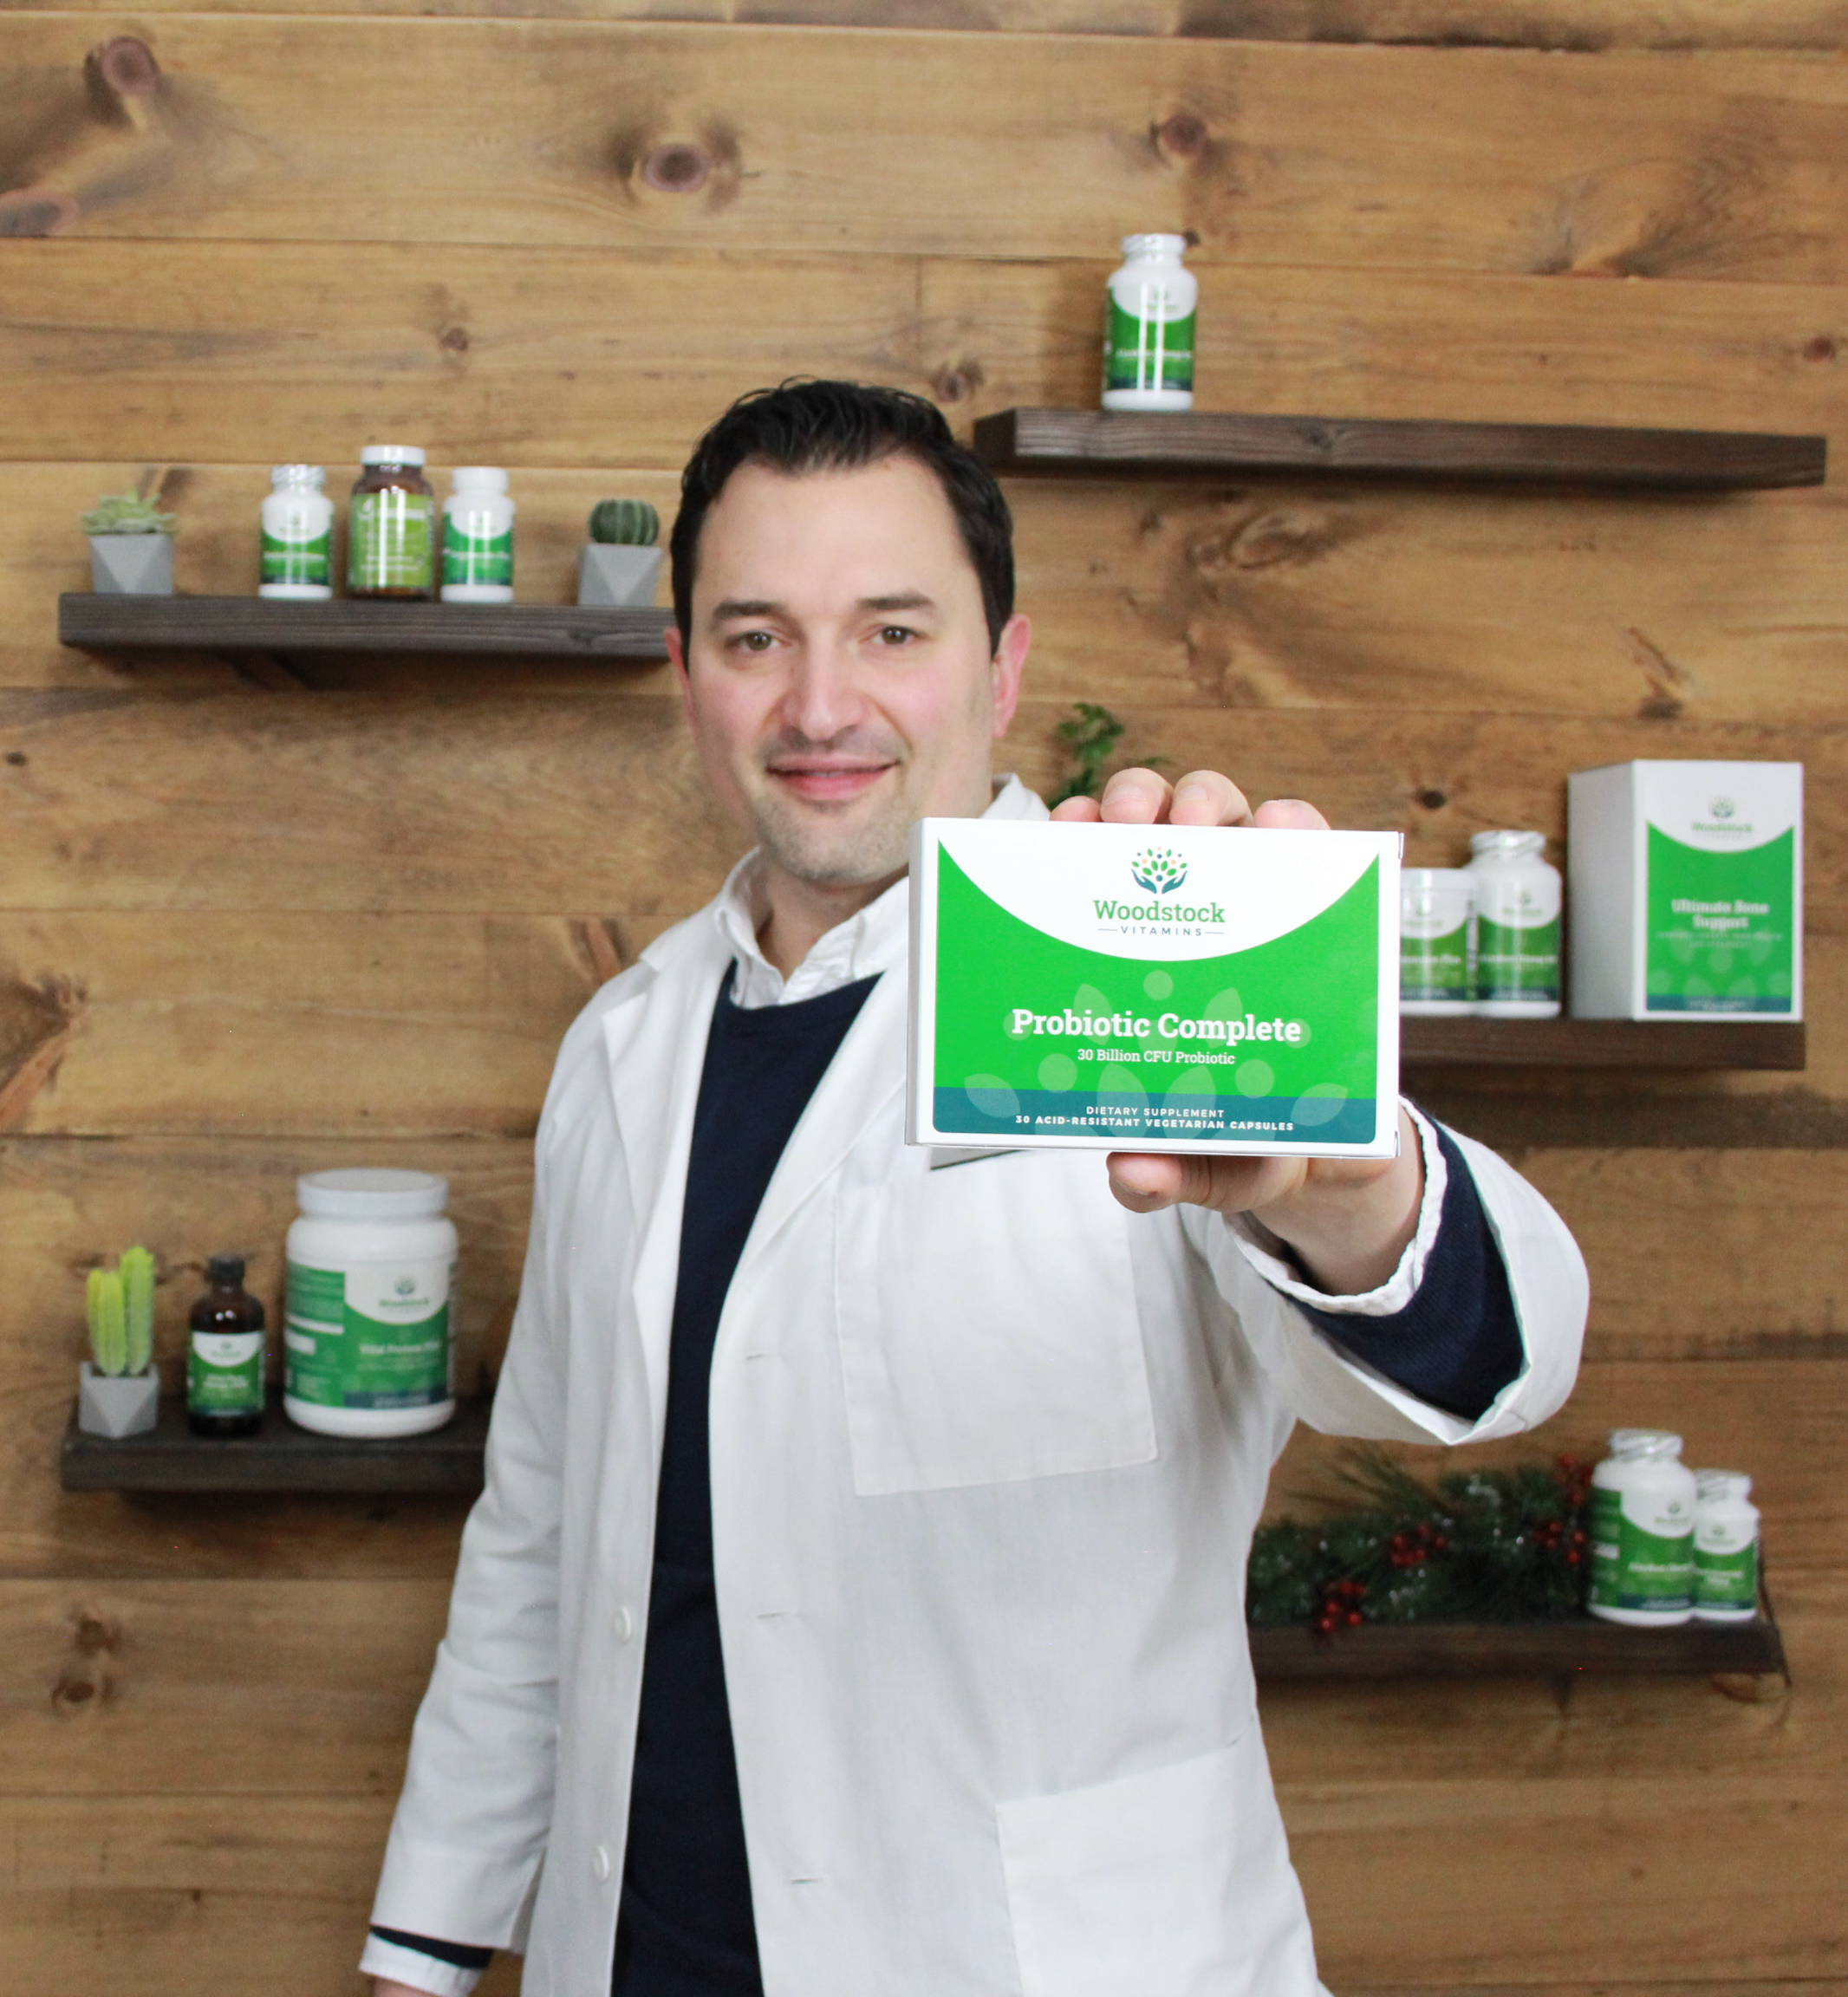 Dr. Neal with Probiotic Complete